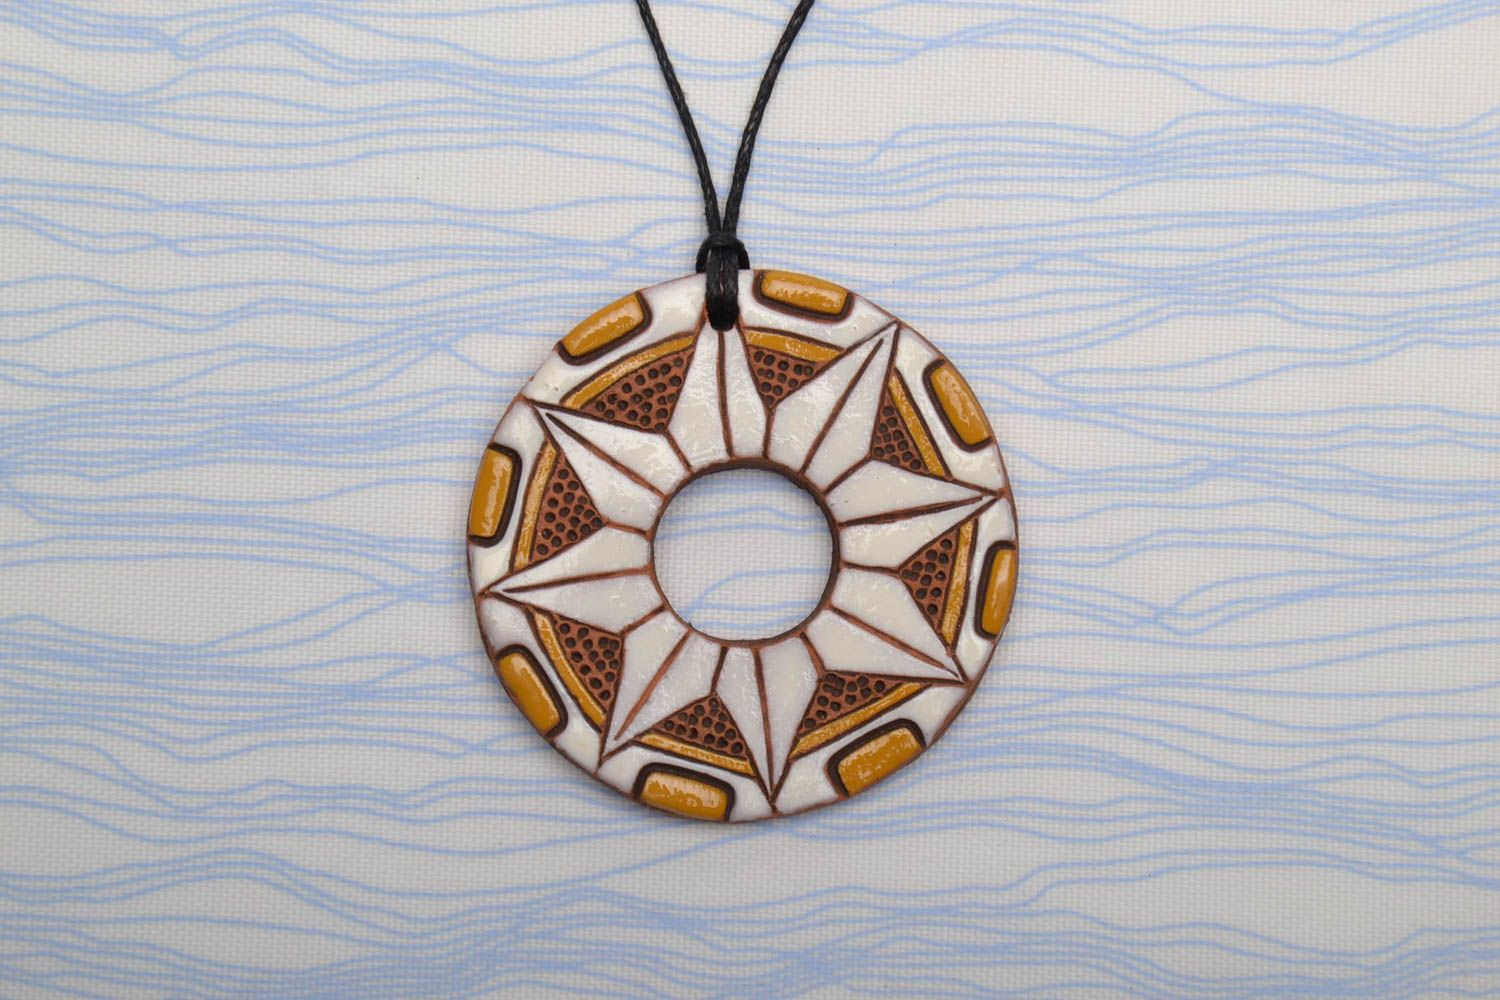 Ceramic pendant with ornaments in ethnic style photo 1